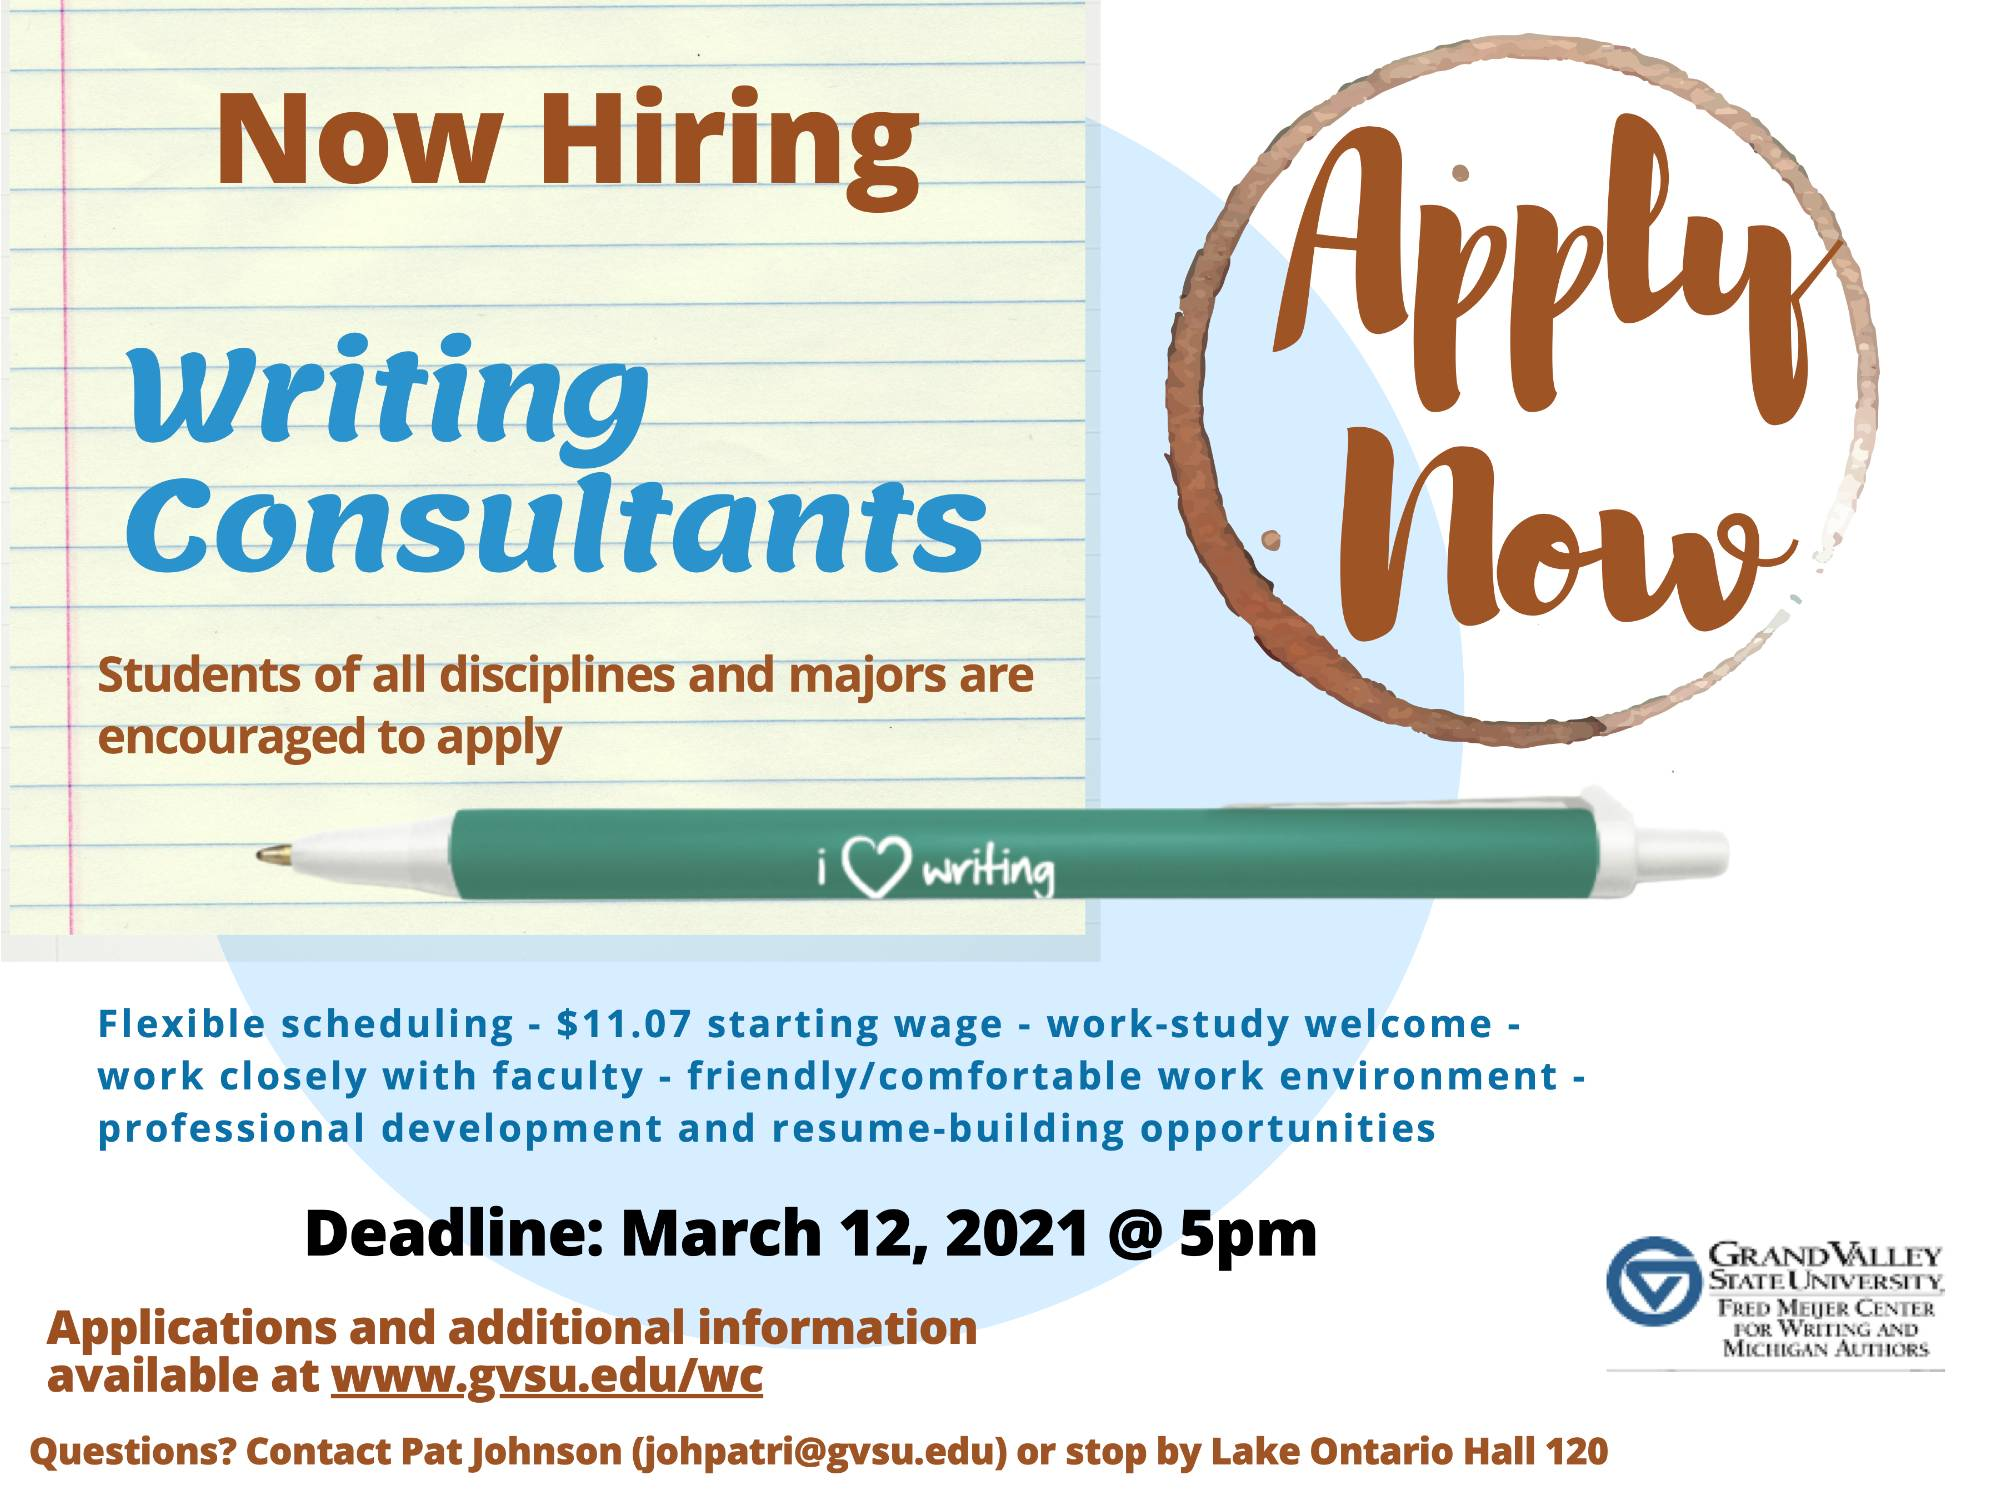 Apply to become a writing consultant